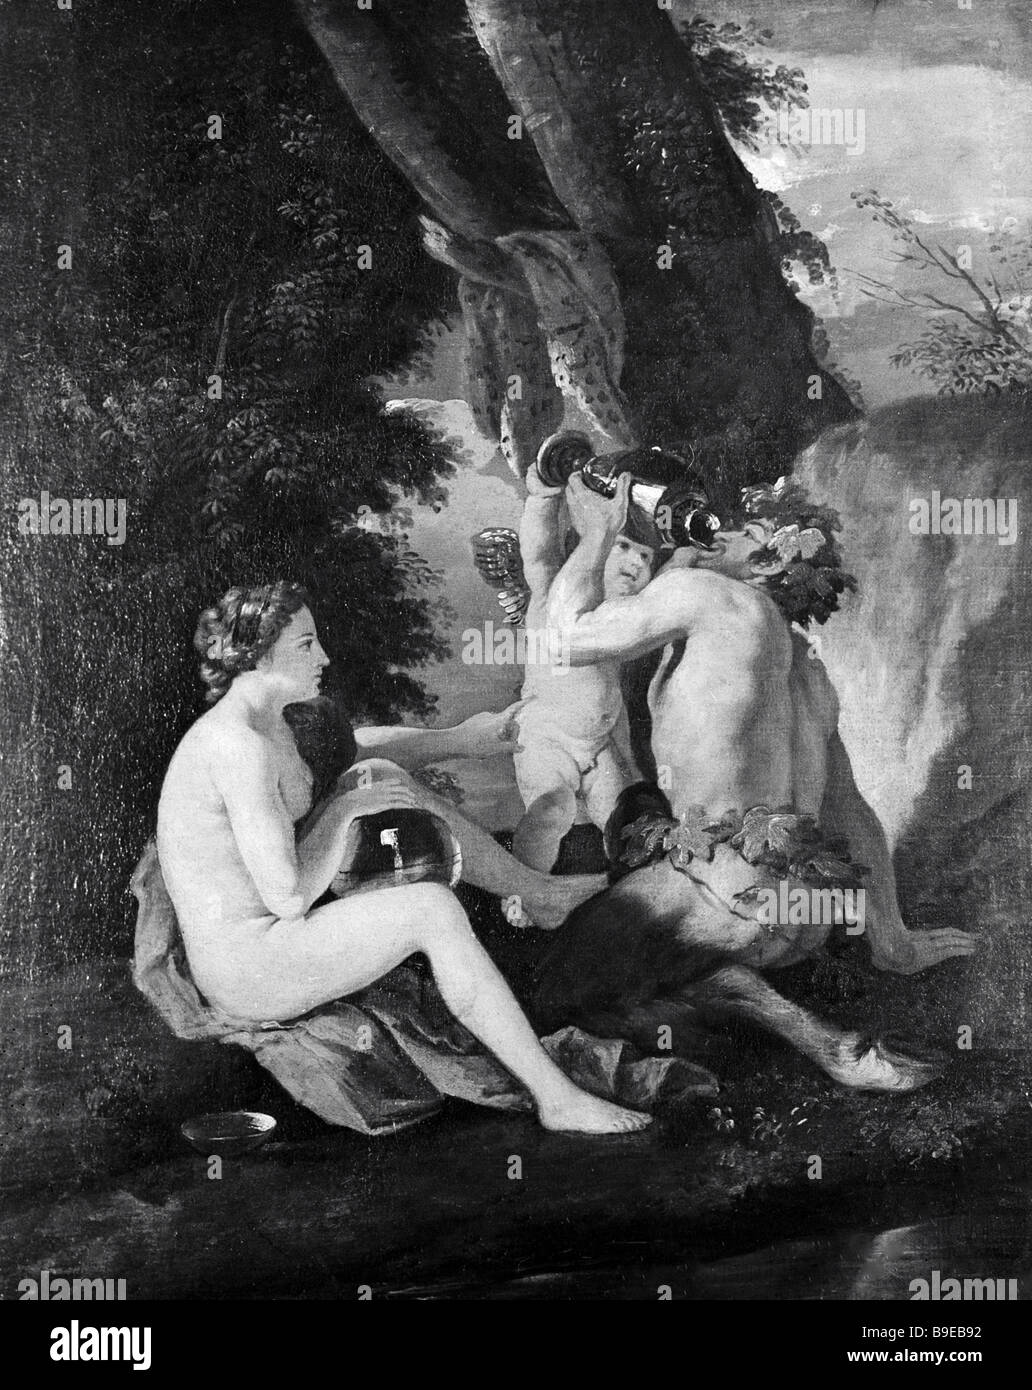 Satyr and Nymph by French painter Nicolas Poussin 91594 1665 reproduction - Stock Image